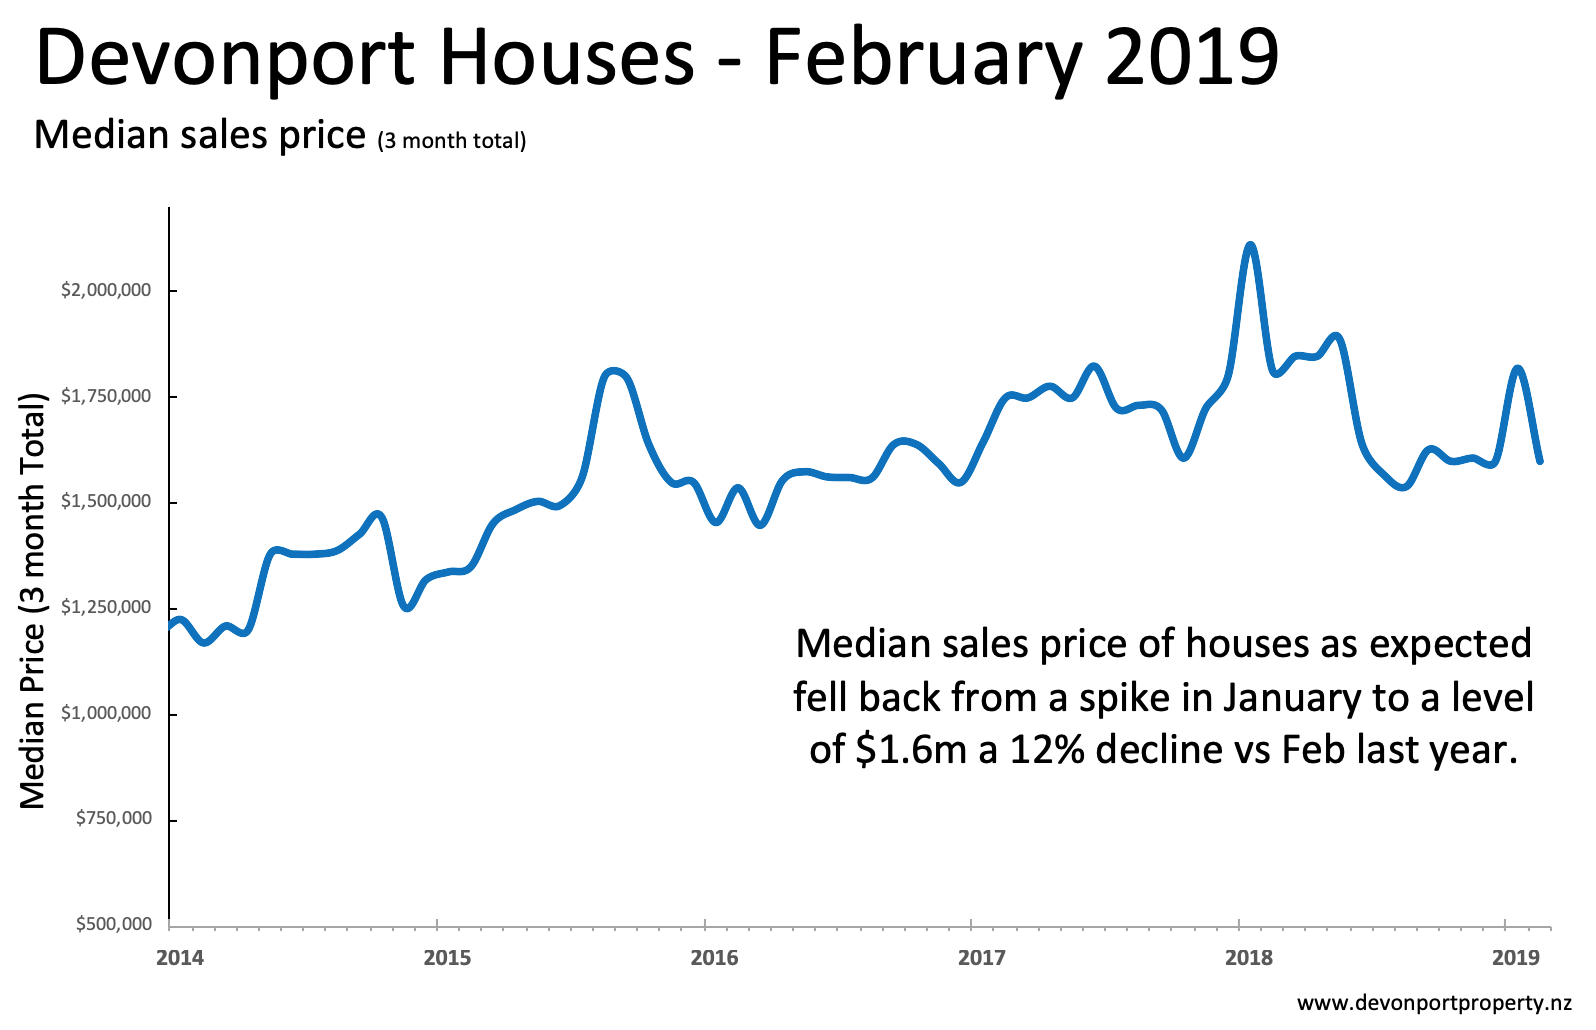 Devonport Property NZ Feb 2019 House median price 3MT.png